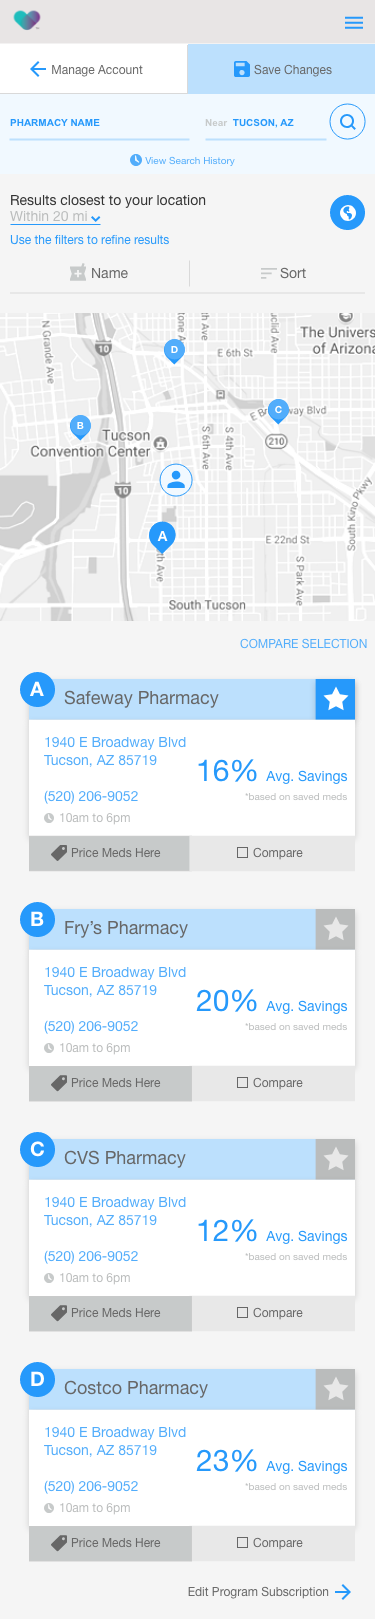 Copy of Pharmacy Search